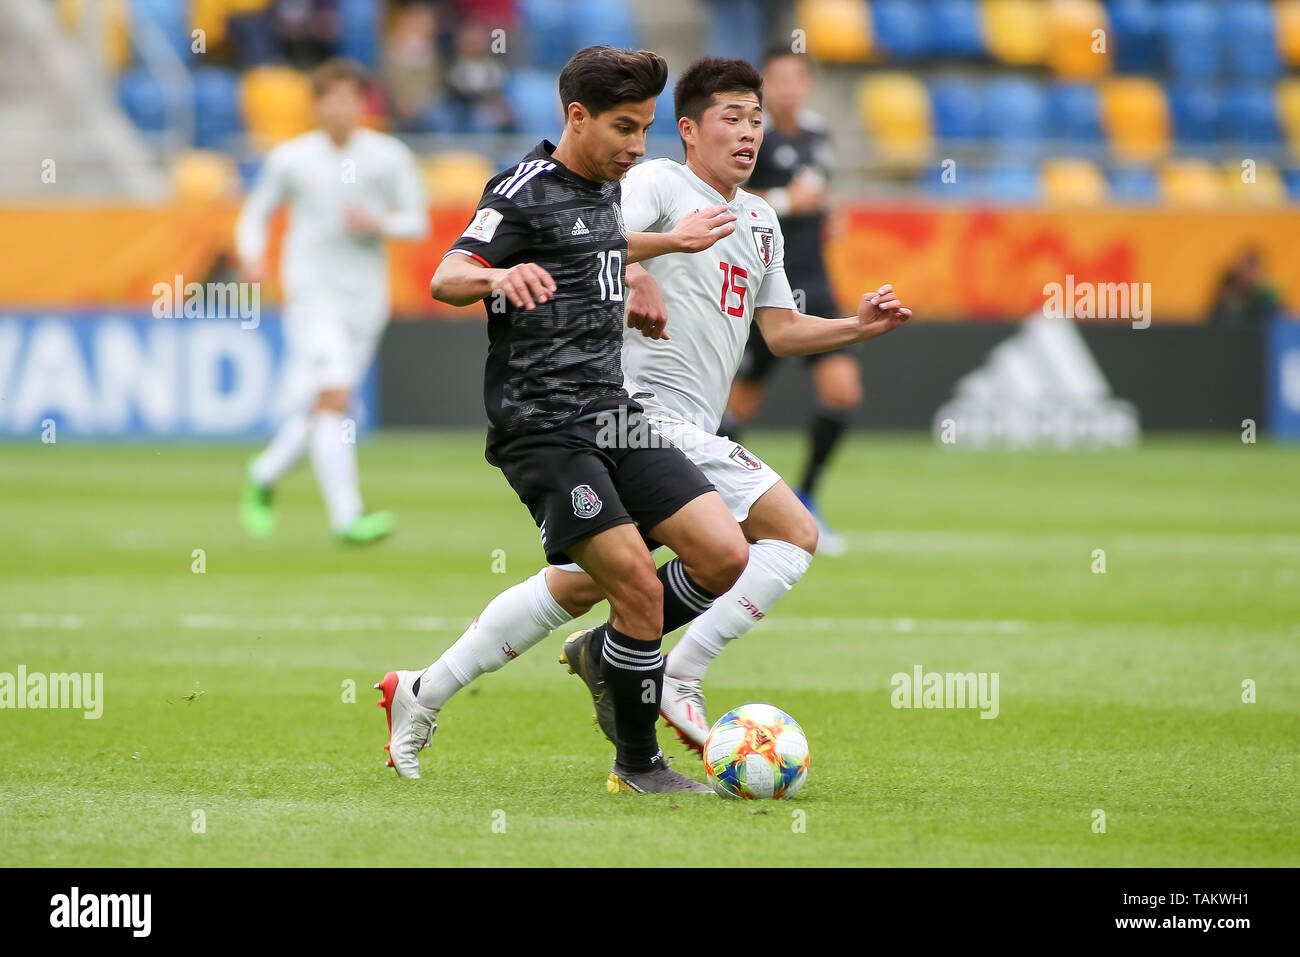 Gdynia Stadium, Gdynia, Poland - 26th May, 2019: Diego Lainez from Mexico and Toichi Suzuki from Japan are seen in action during FIFA U-20 World Cup match between Mexico and Japan (GROUP B) in Gdynia. (Final score; Mexico 0:3 Japan) - Stock Image